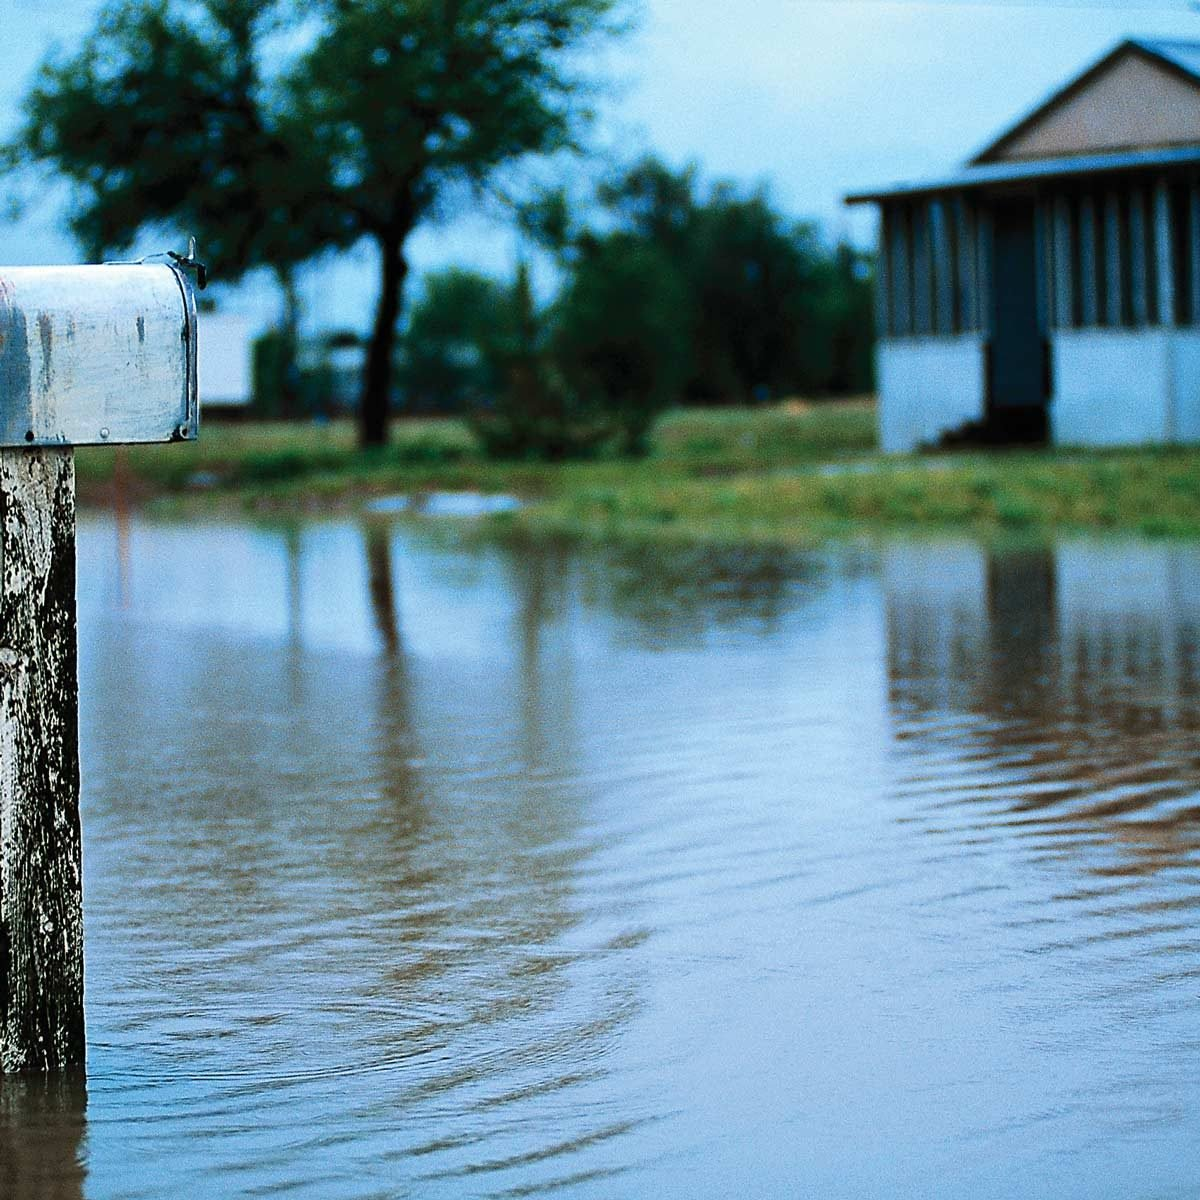 Get Your Home Ready for Floods